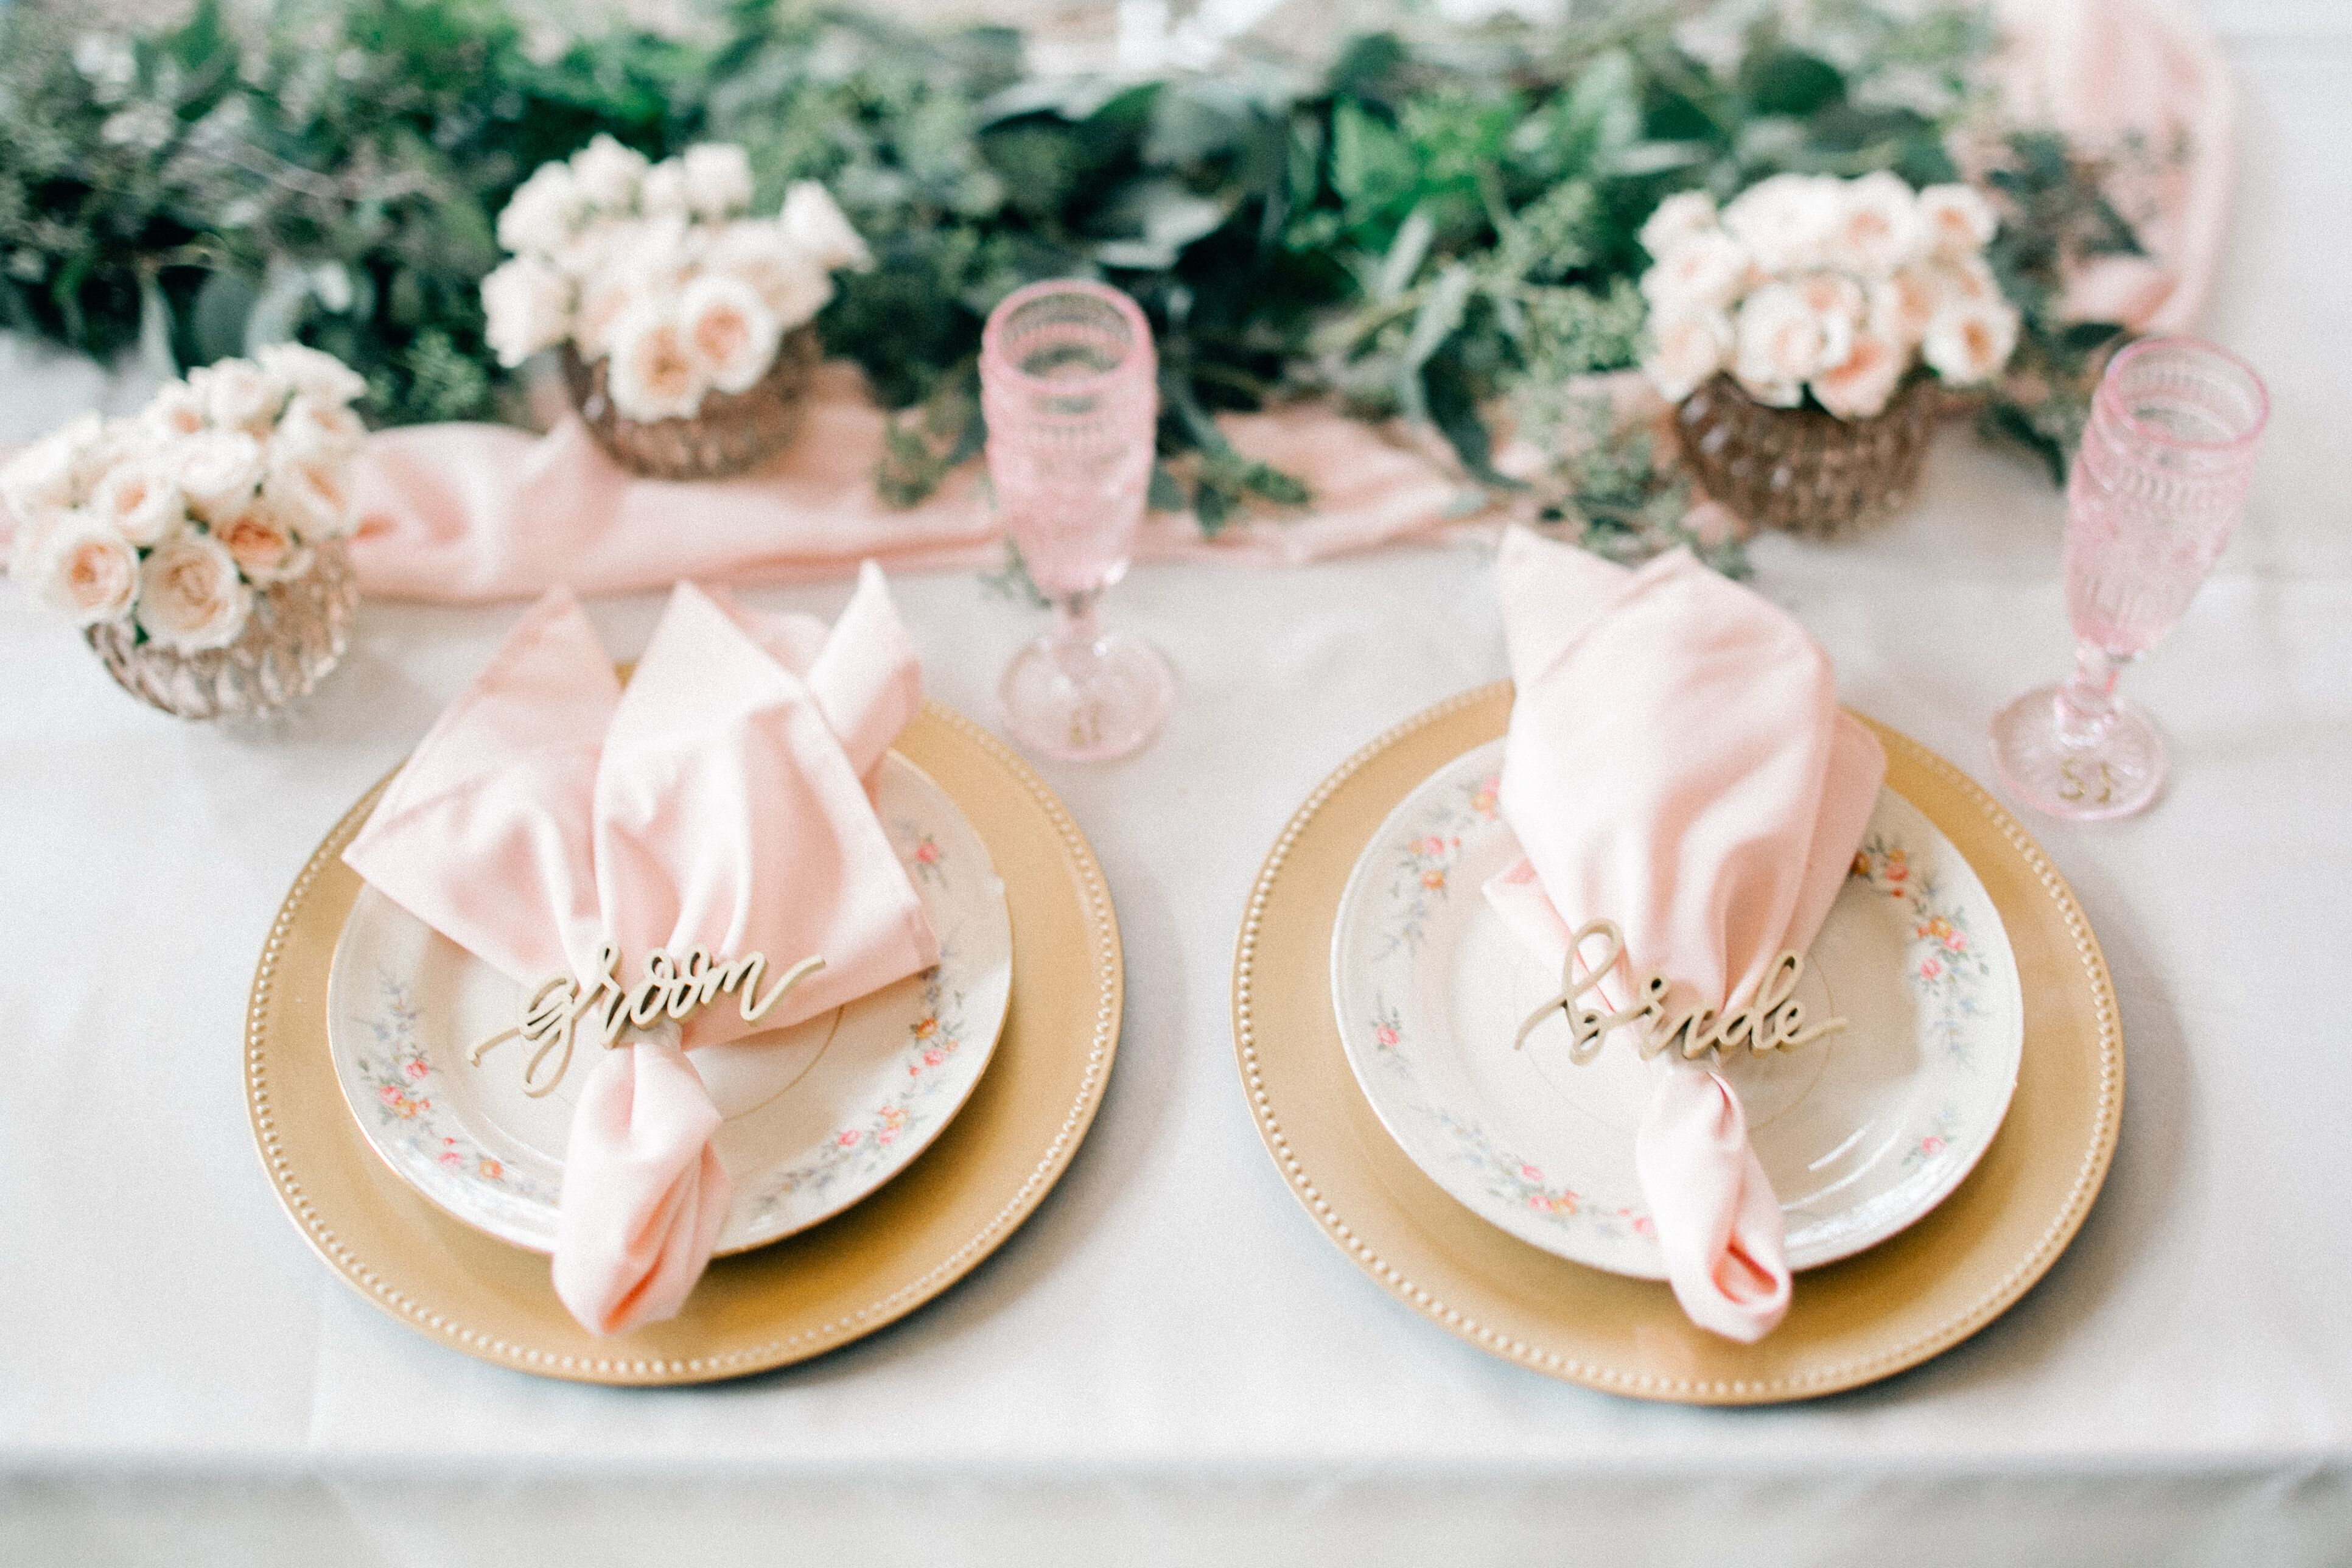 Bohemian China Place Settings With Soft Pink Linens And Gold Napkin Ring Place Cards